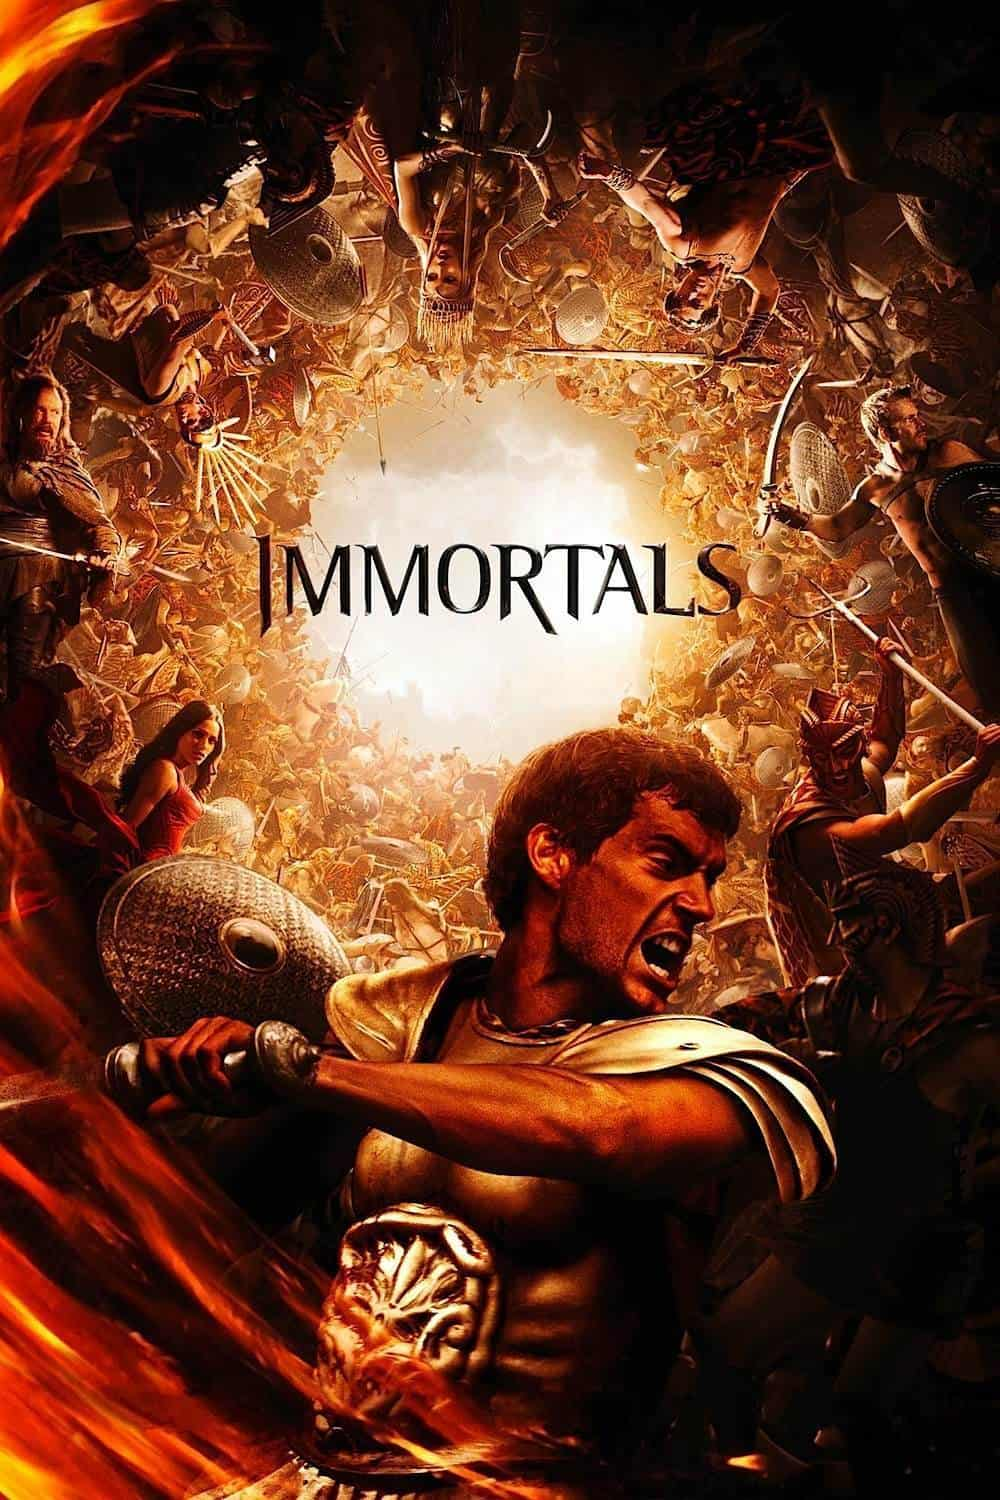 Immortals, 2011